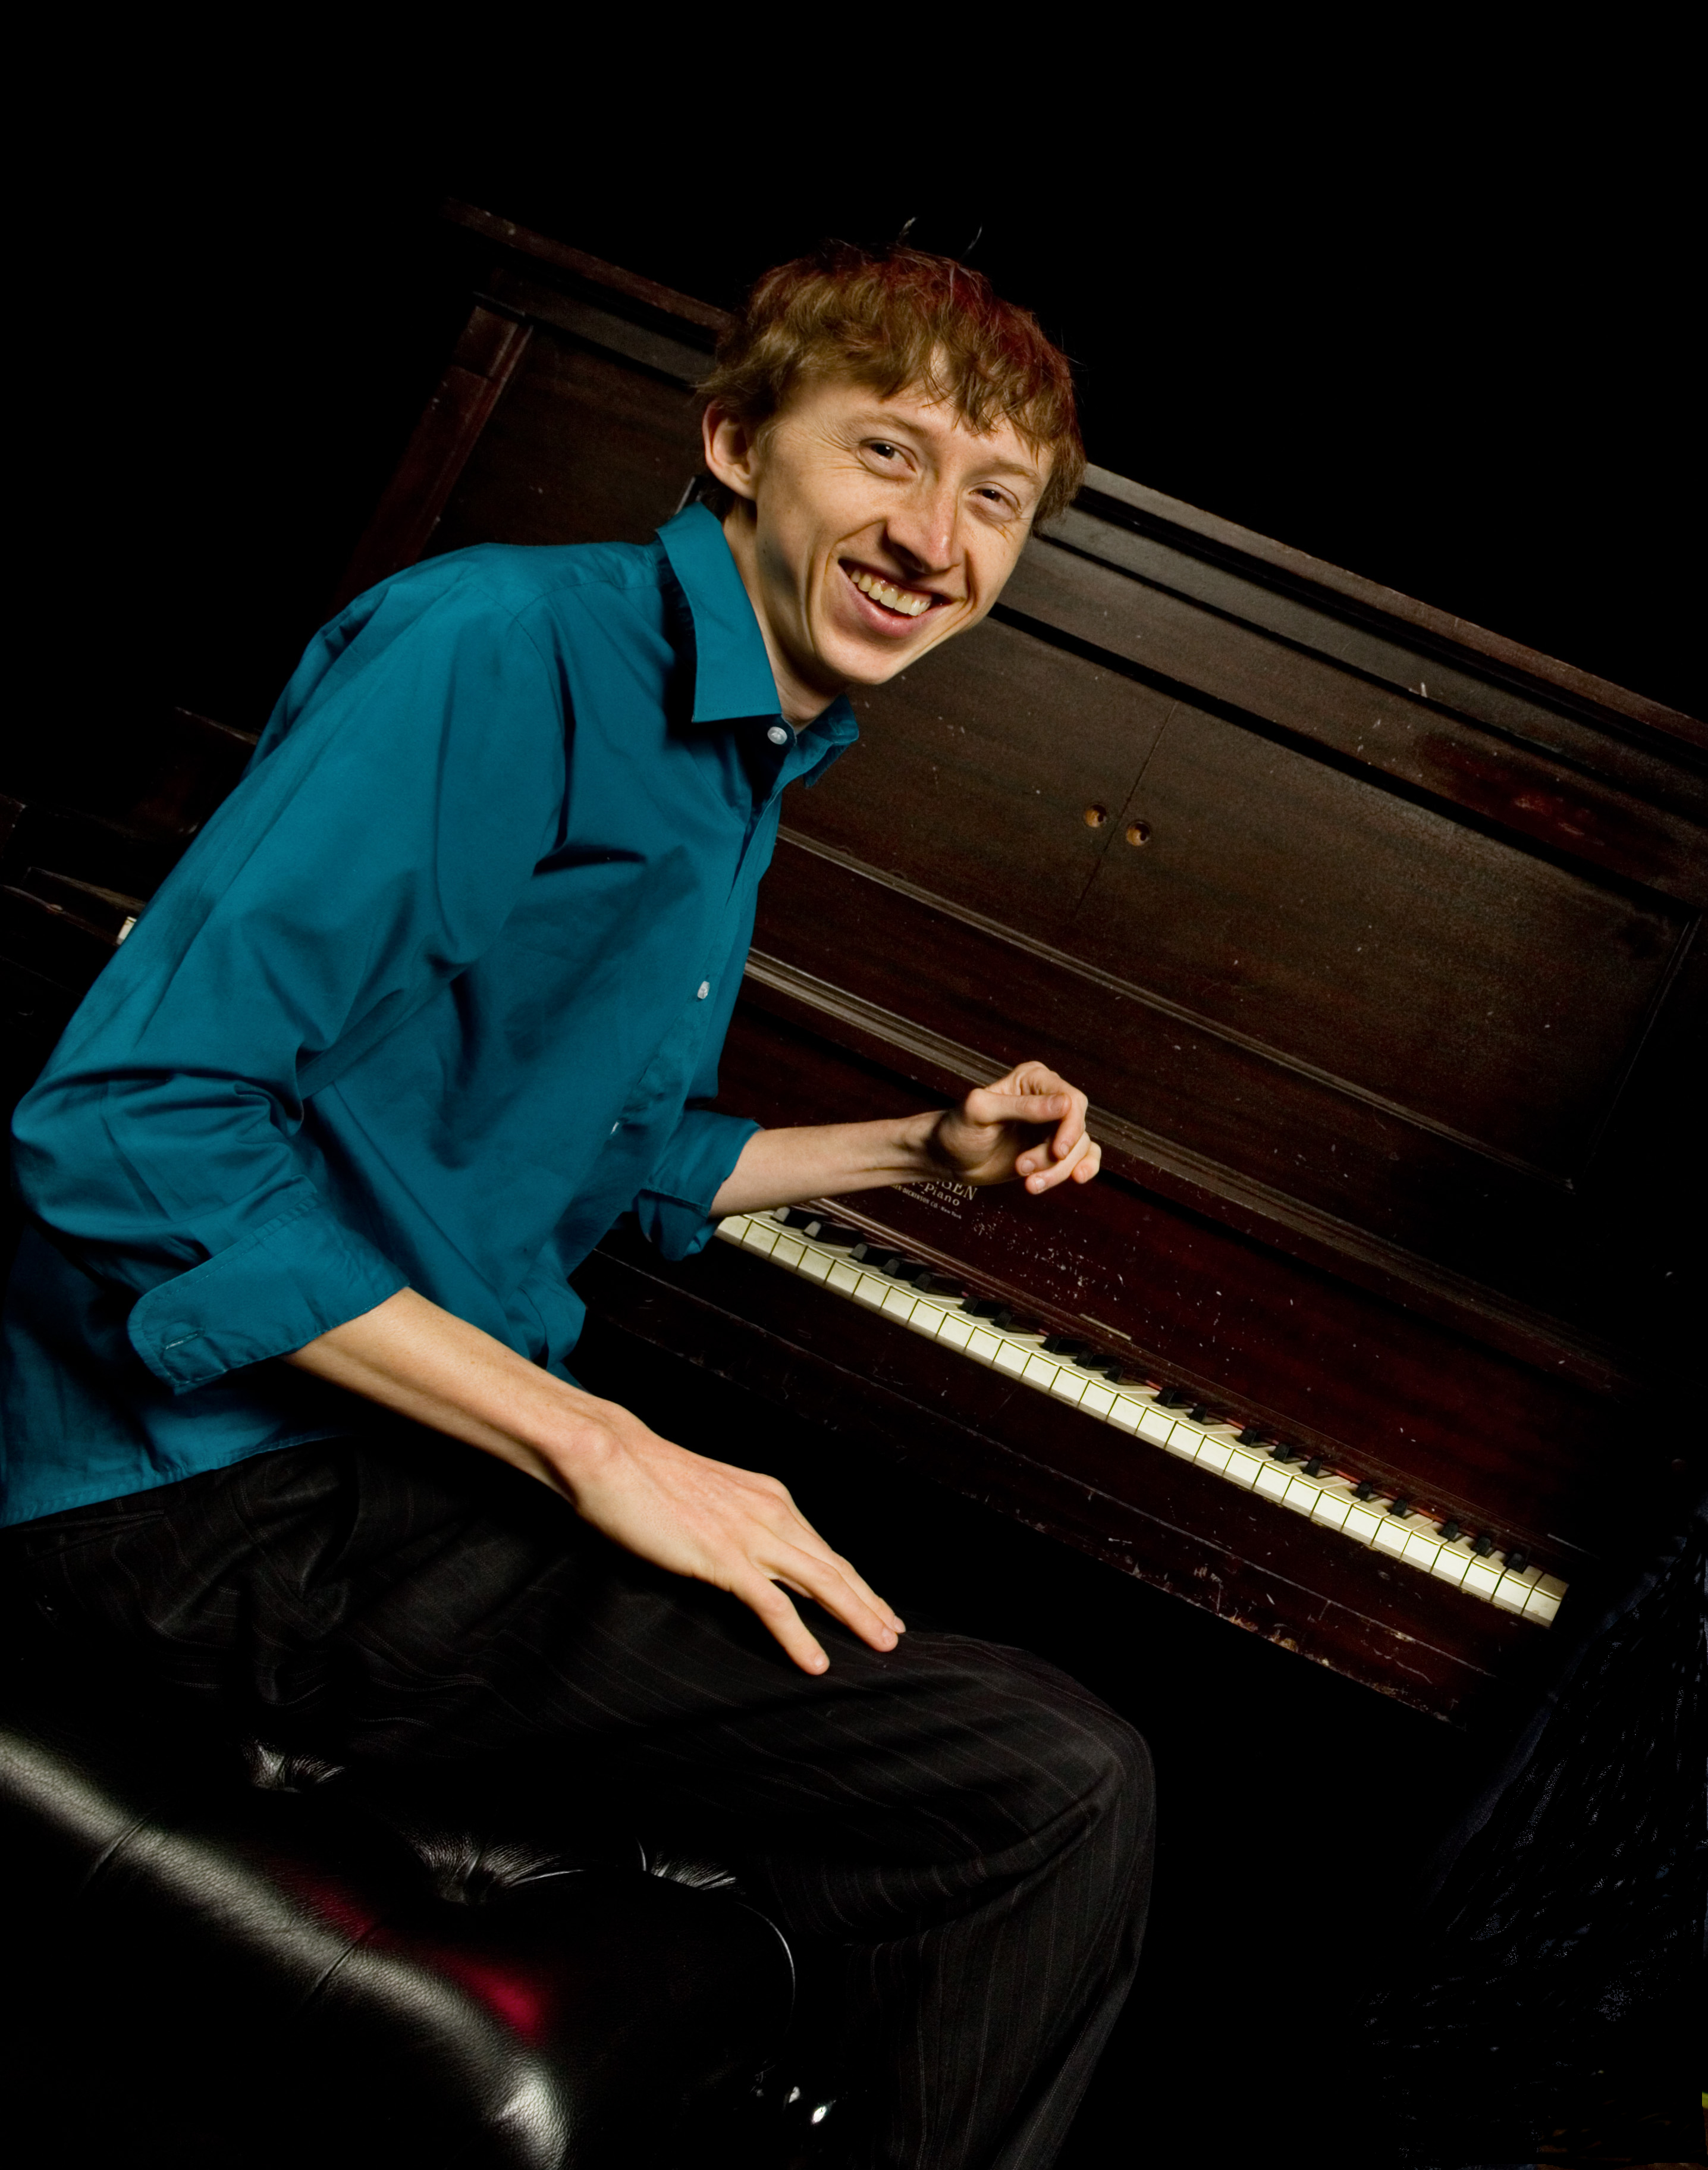 Steve Hobert Dazzles with Mood Shifting Piano Style